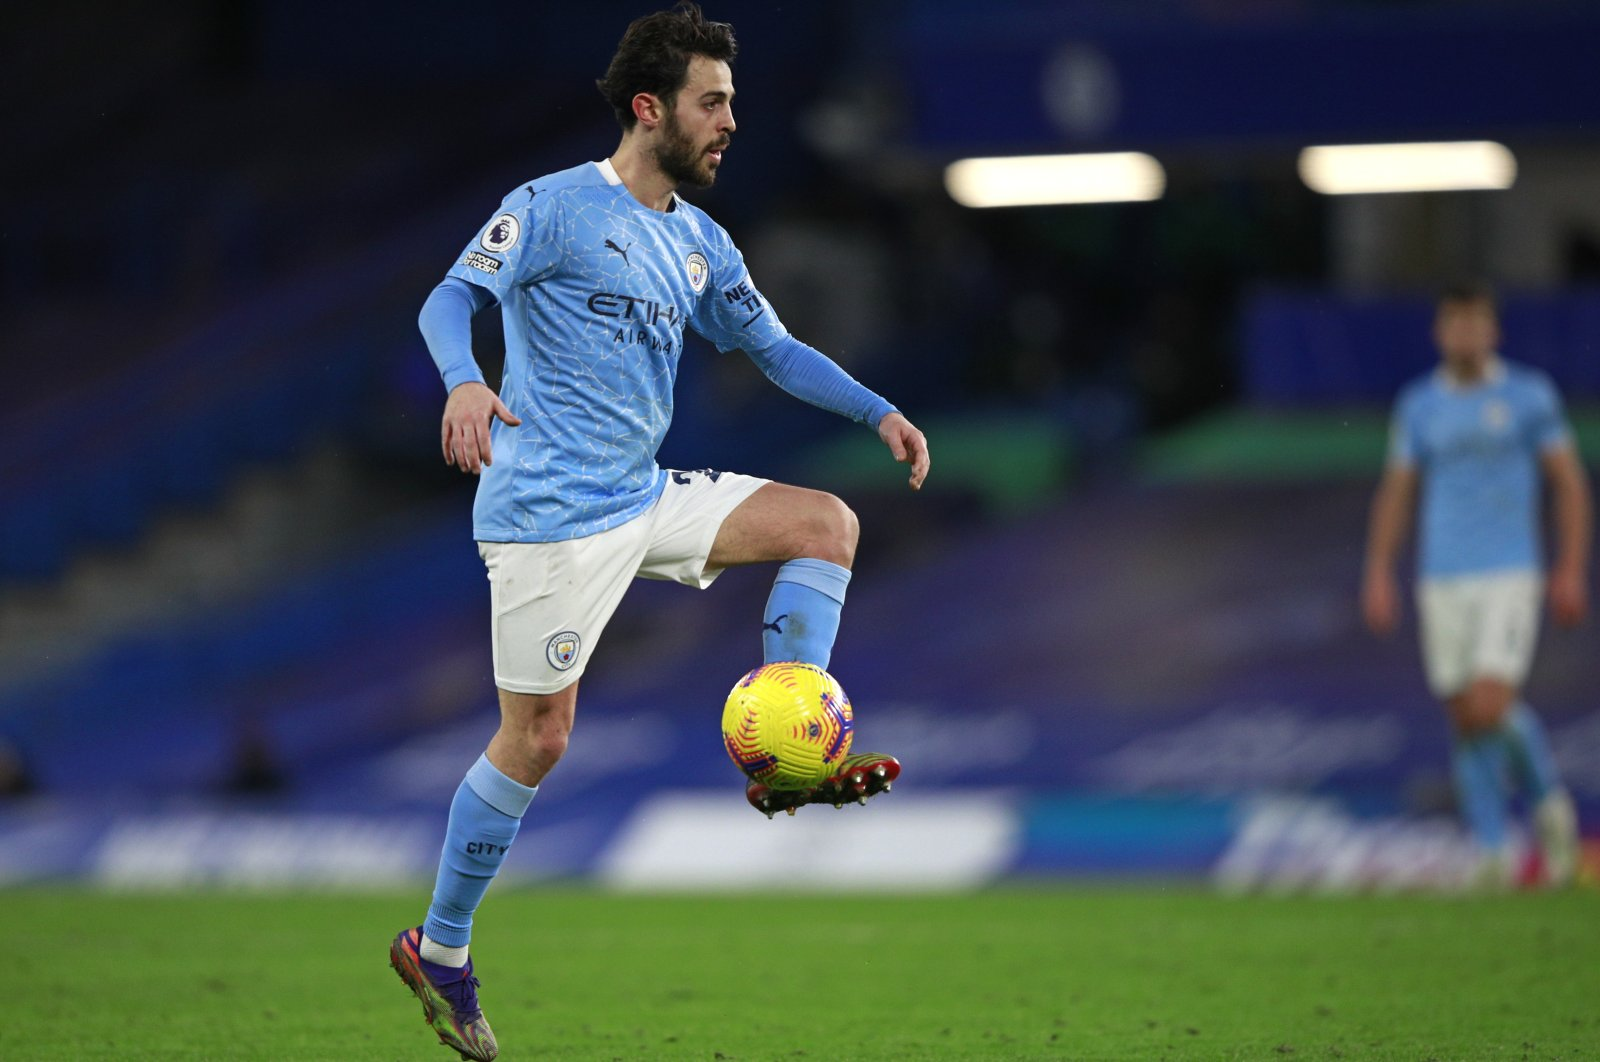 Manchester City's Bernardo Silva controls the ball during a Premier League match against Chelsea at Stamford Bridge, in London, England, Jan. 3, 2021. (AP Photo)